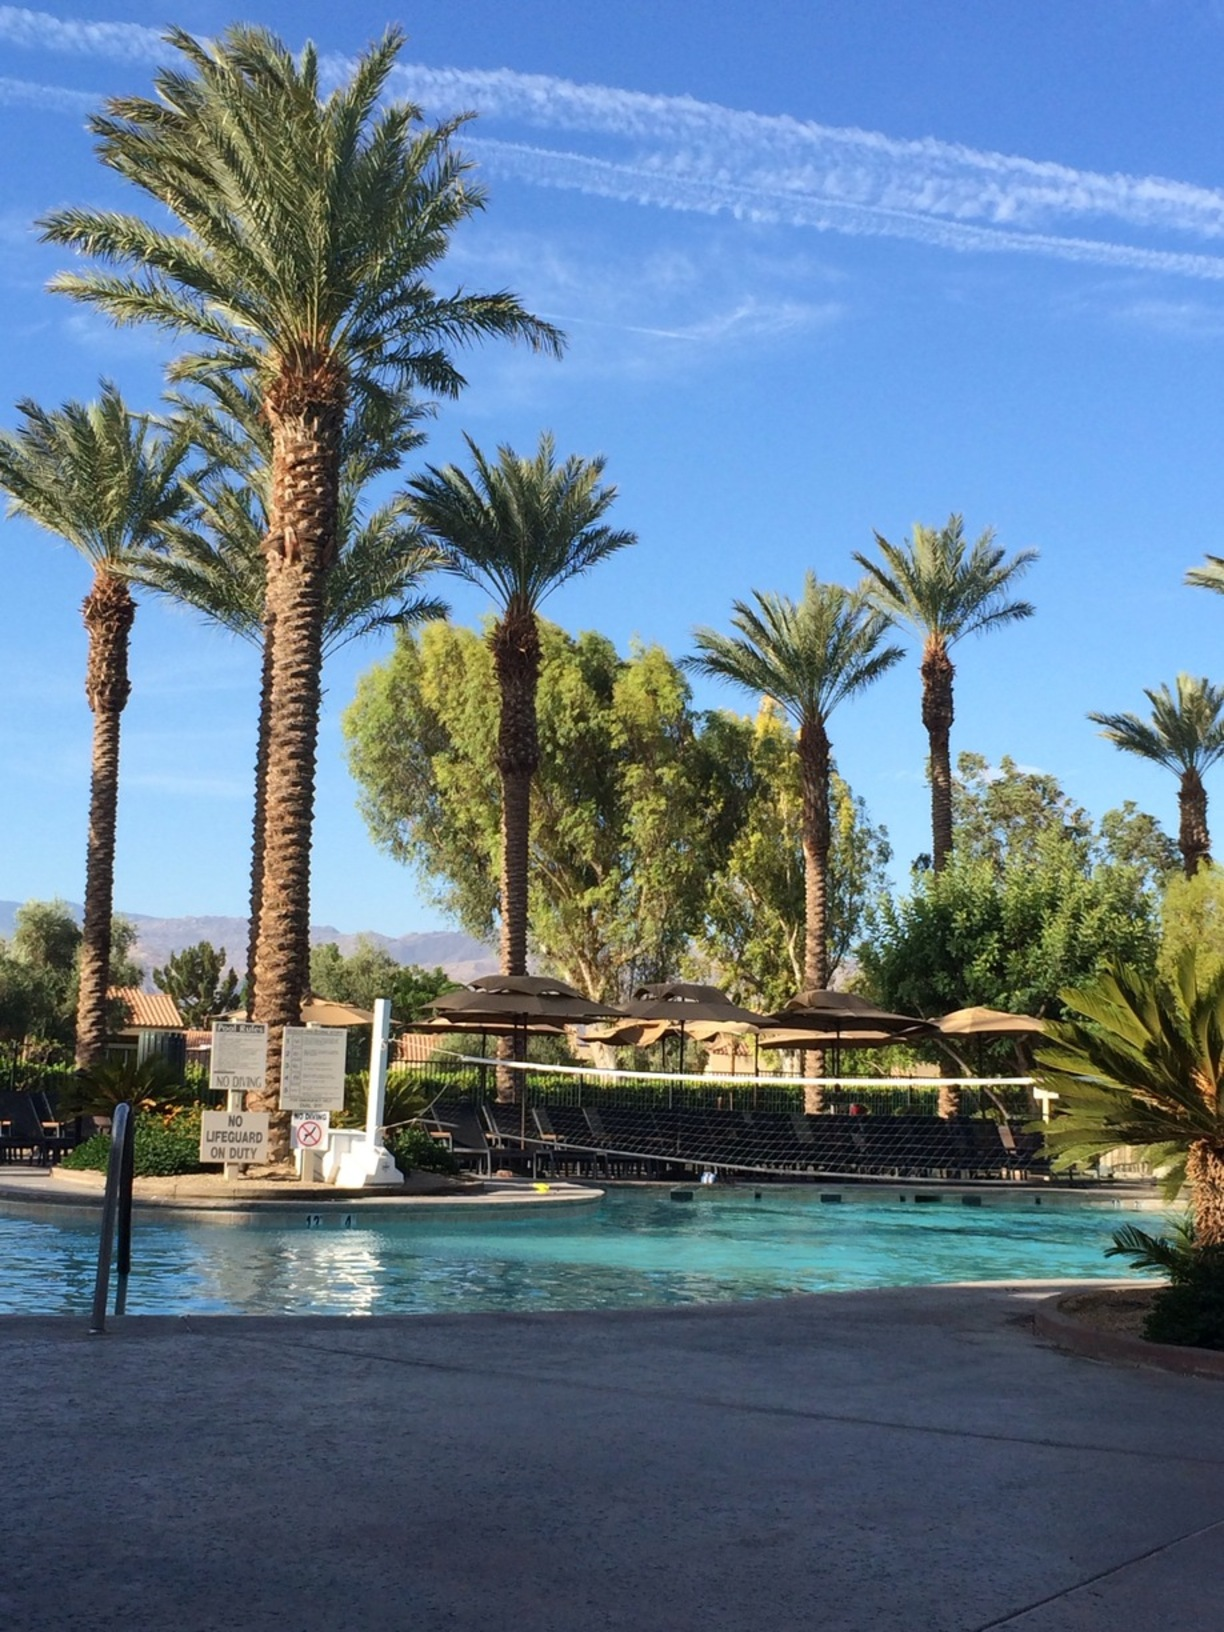 Top Hotels In San Diego Pismo Beach And Rancho Mirage